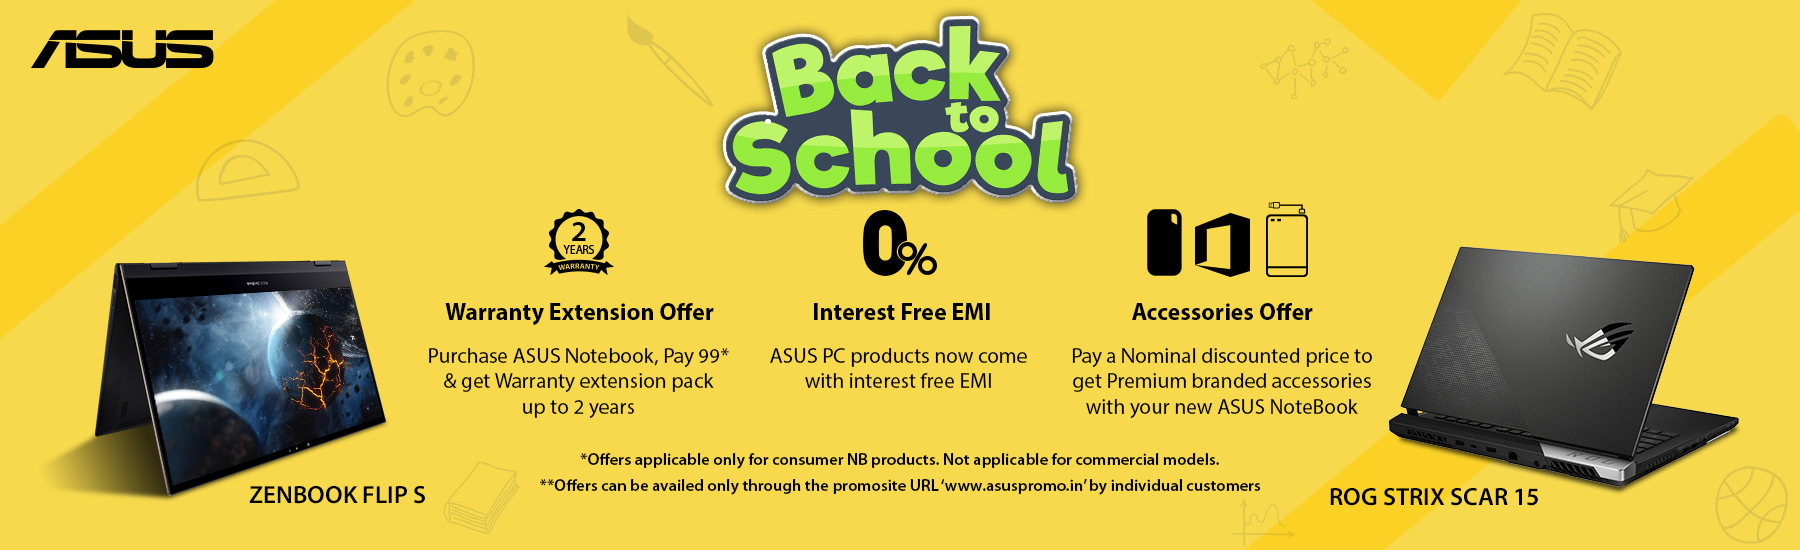 Asus Back to School Offer